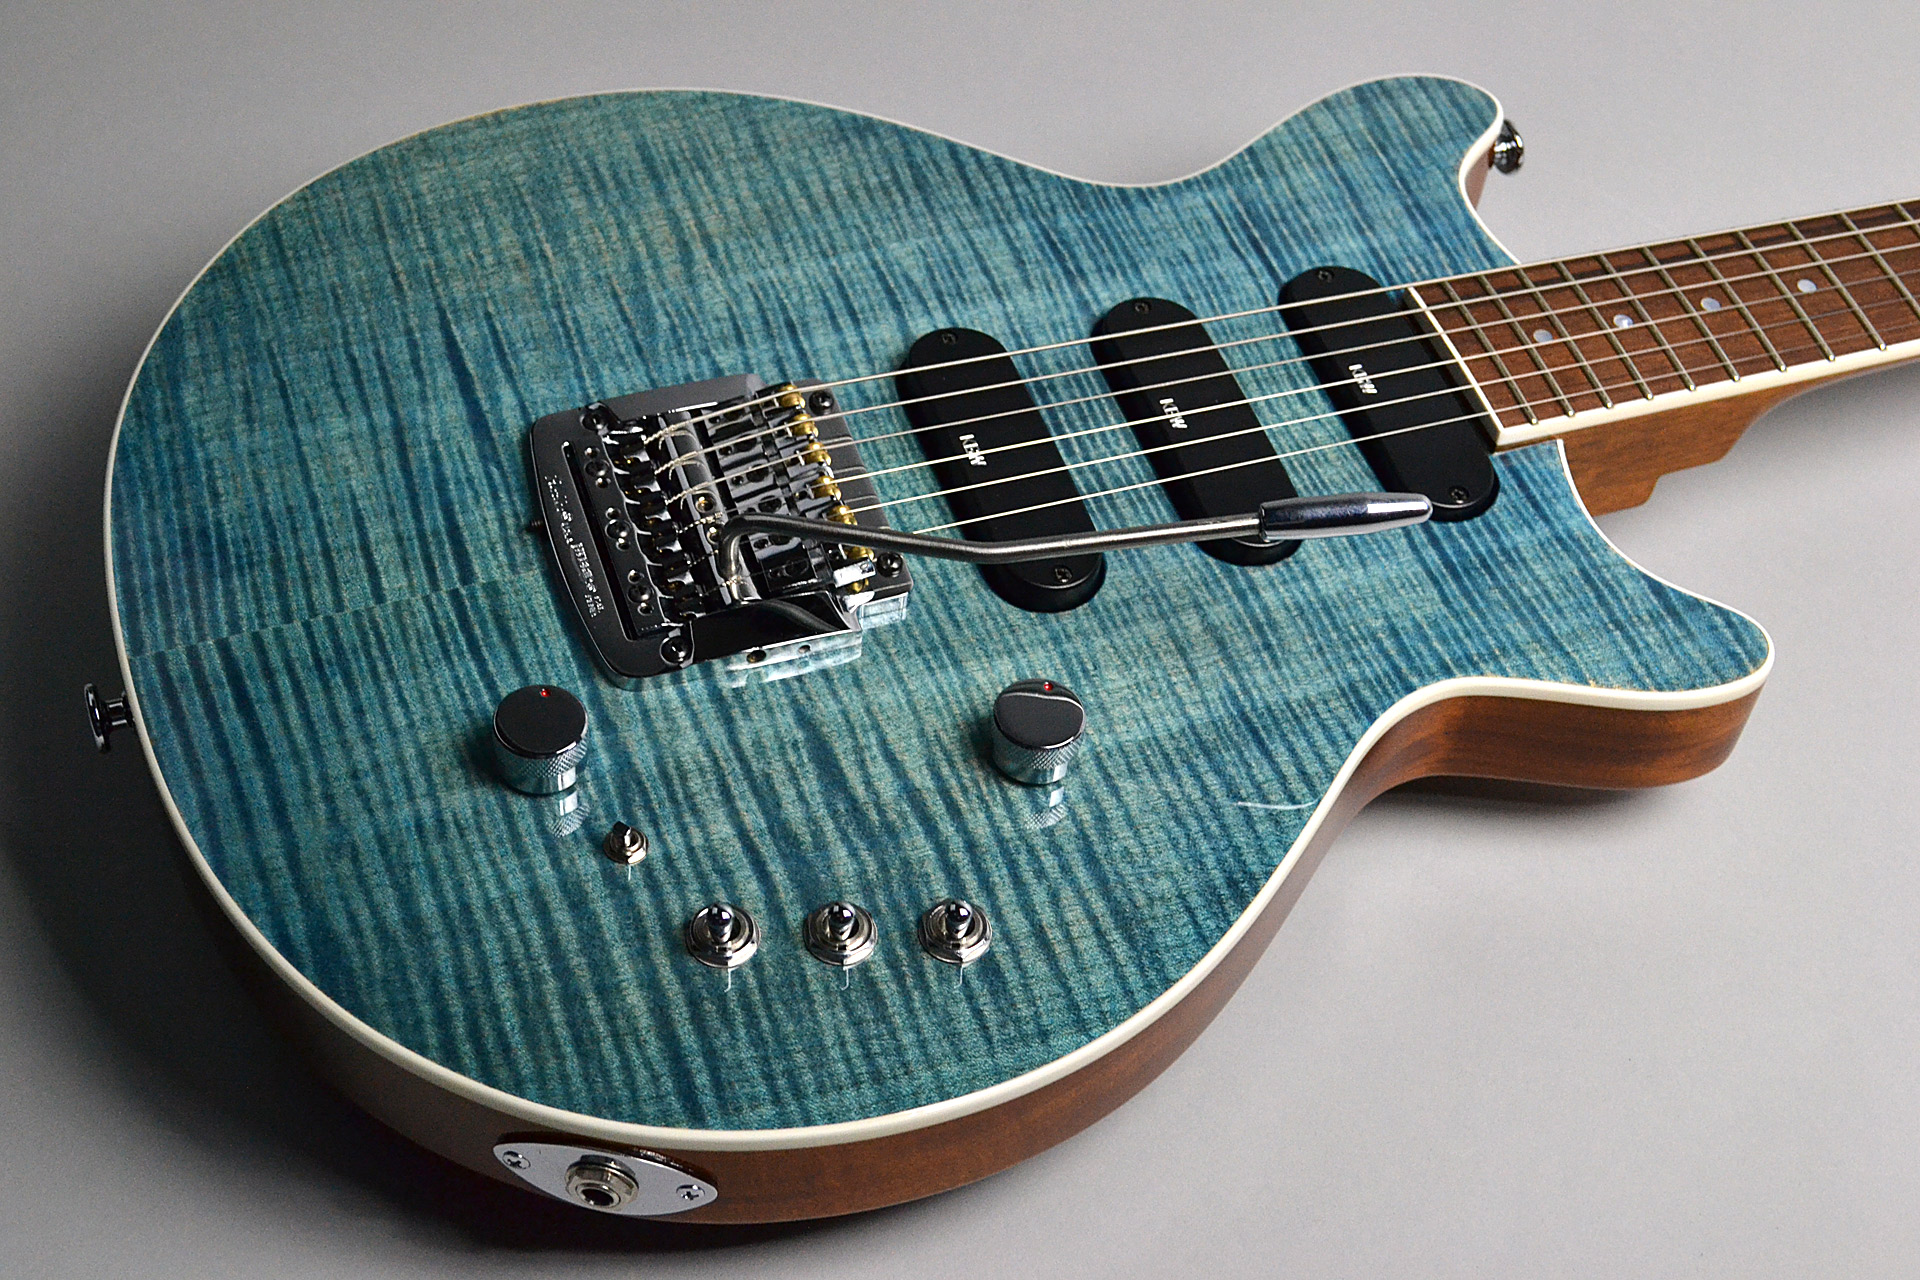 Kz One Solid 3S23 Kahler Figured Maple Blue Denimのボディトップ-アップ画像